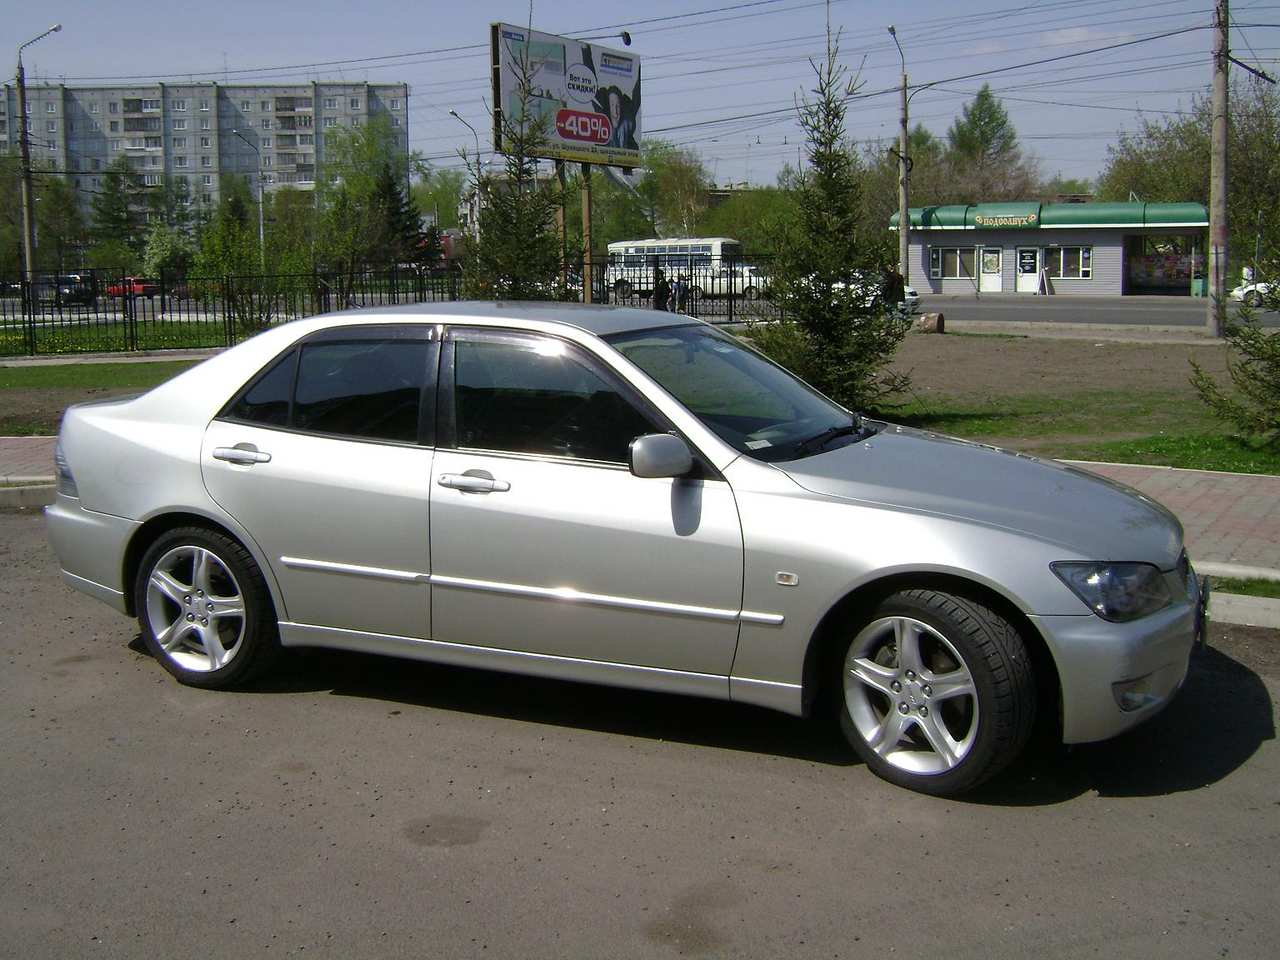 2004 Toyota Altezza Photos, 2.0, Gasoline, FR or RR, Manual For Sale